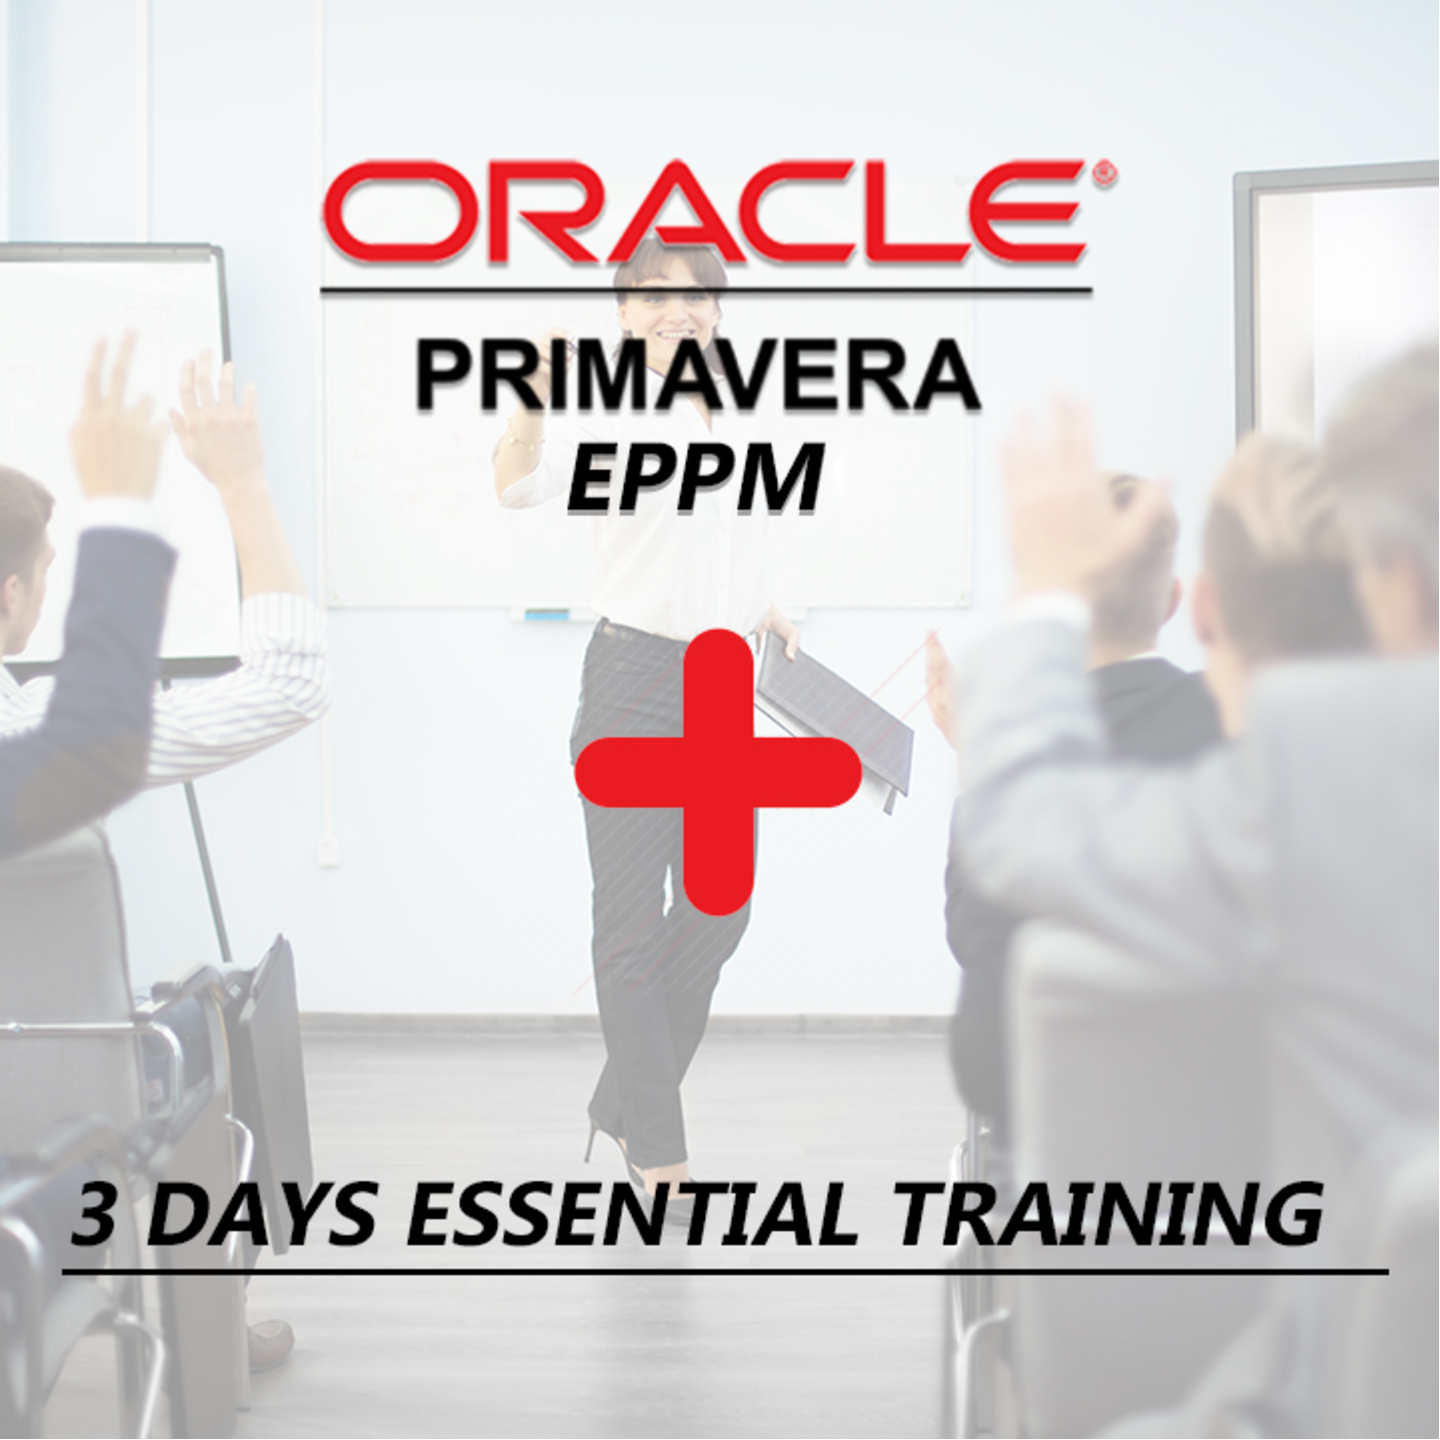 Oracle Primavera EPPM